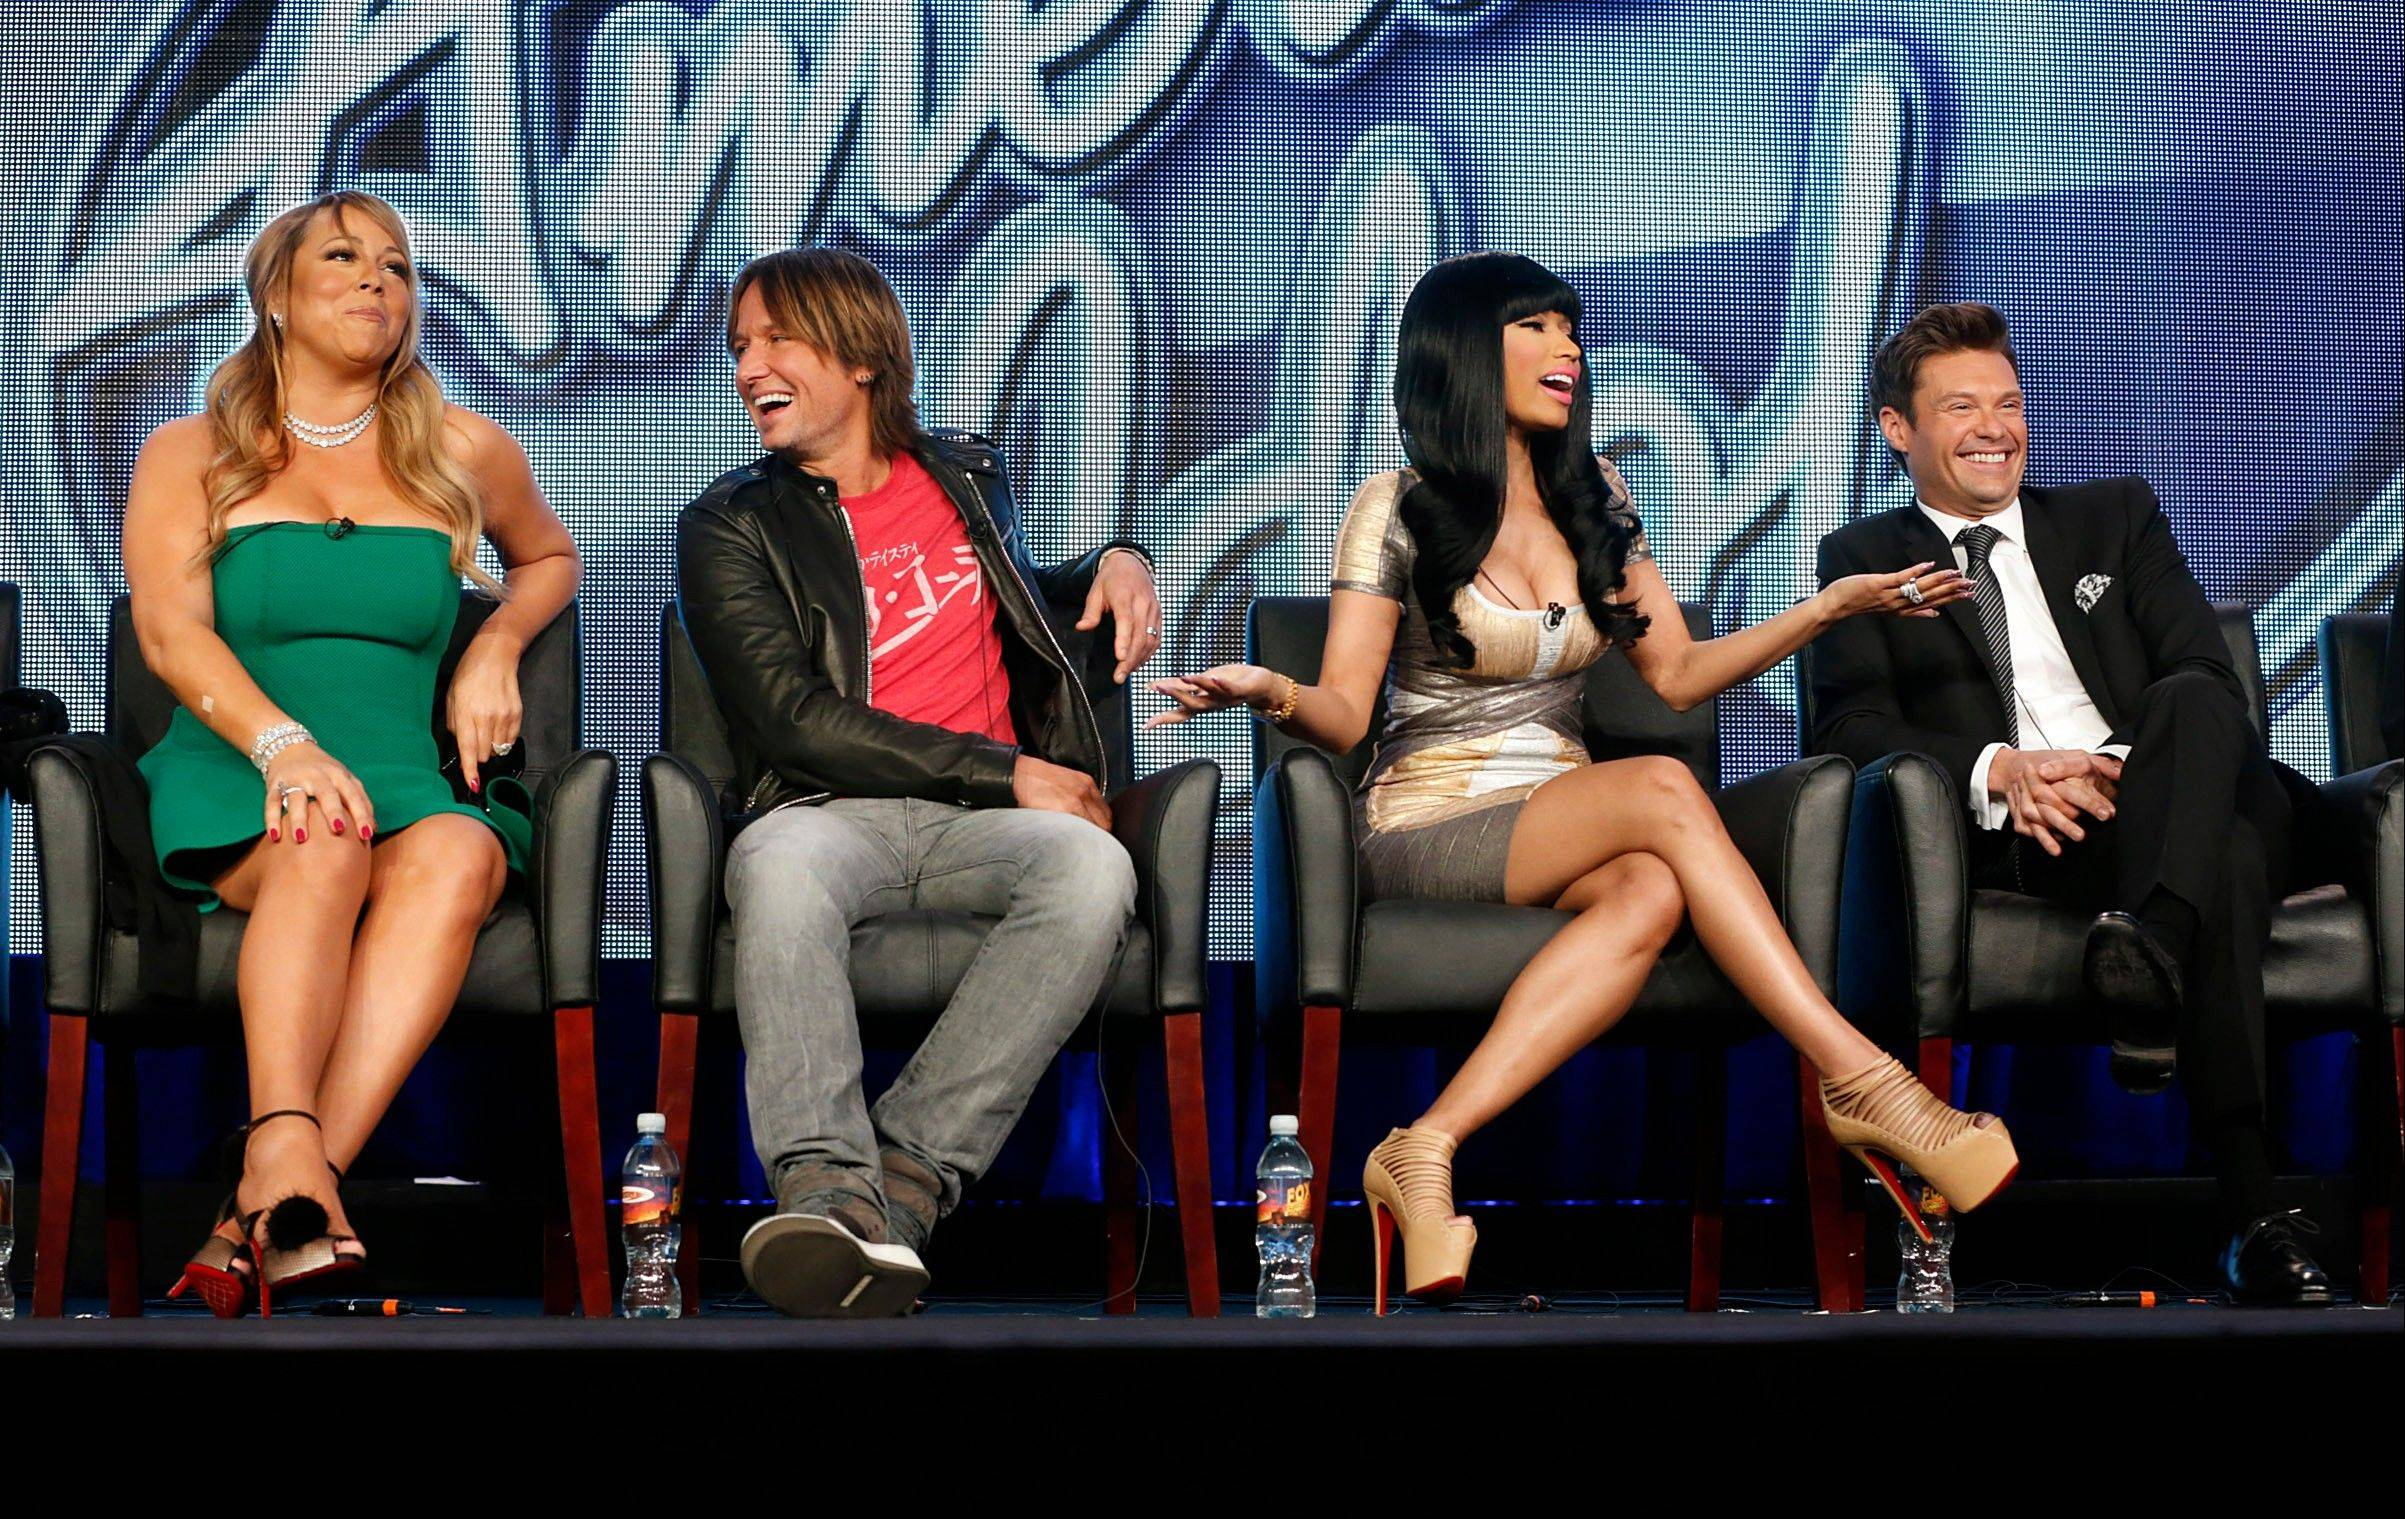 """I feel like we jell well in a weird, crazy way,"" Nicki Minaj declared optimistically of the panel -- Mariah Carey, left, Keith Urban, Minaj and host Ryan Seacrest -- near the conclusion of the first episode of this season of Fox's ""American Idol"" Wednesday."